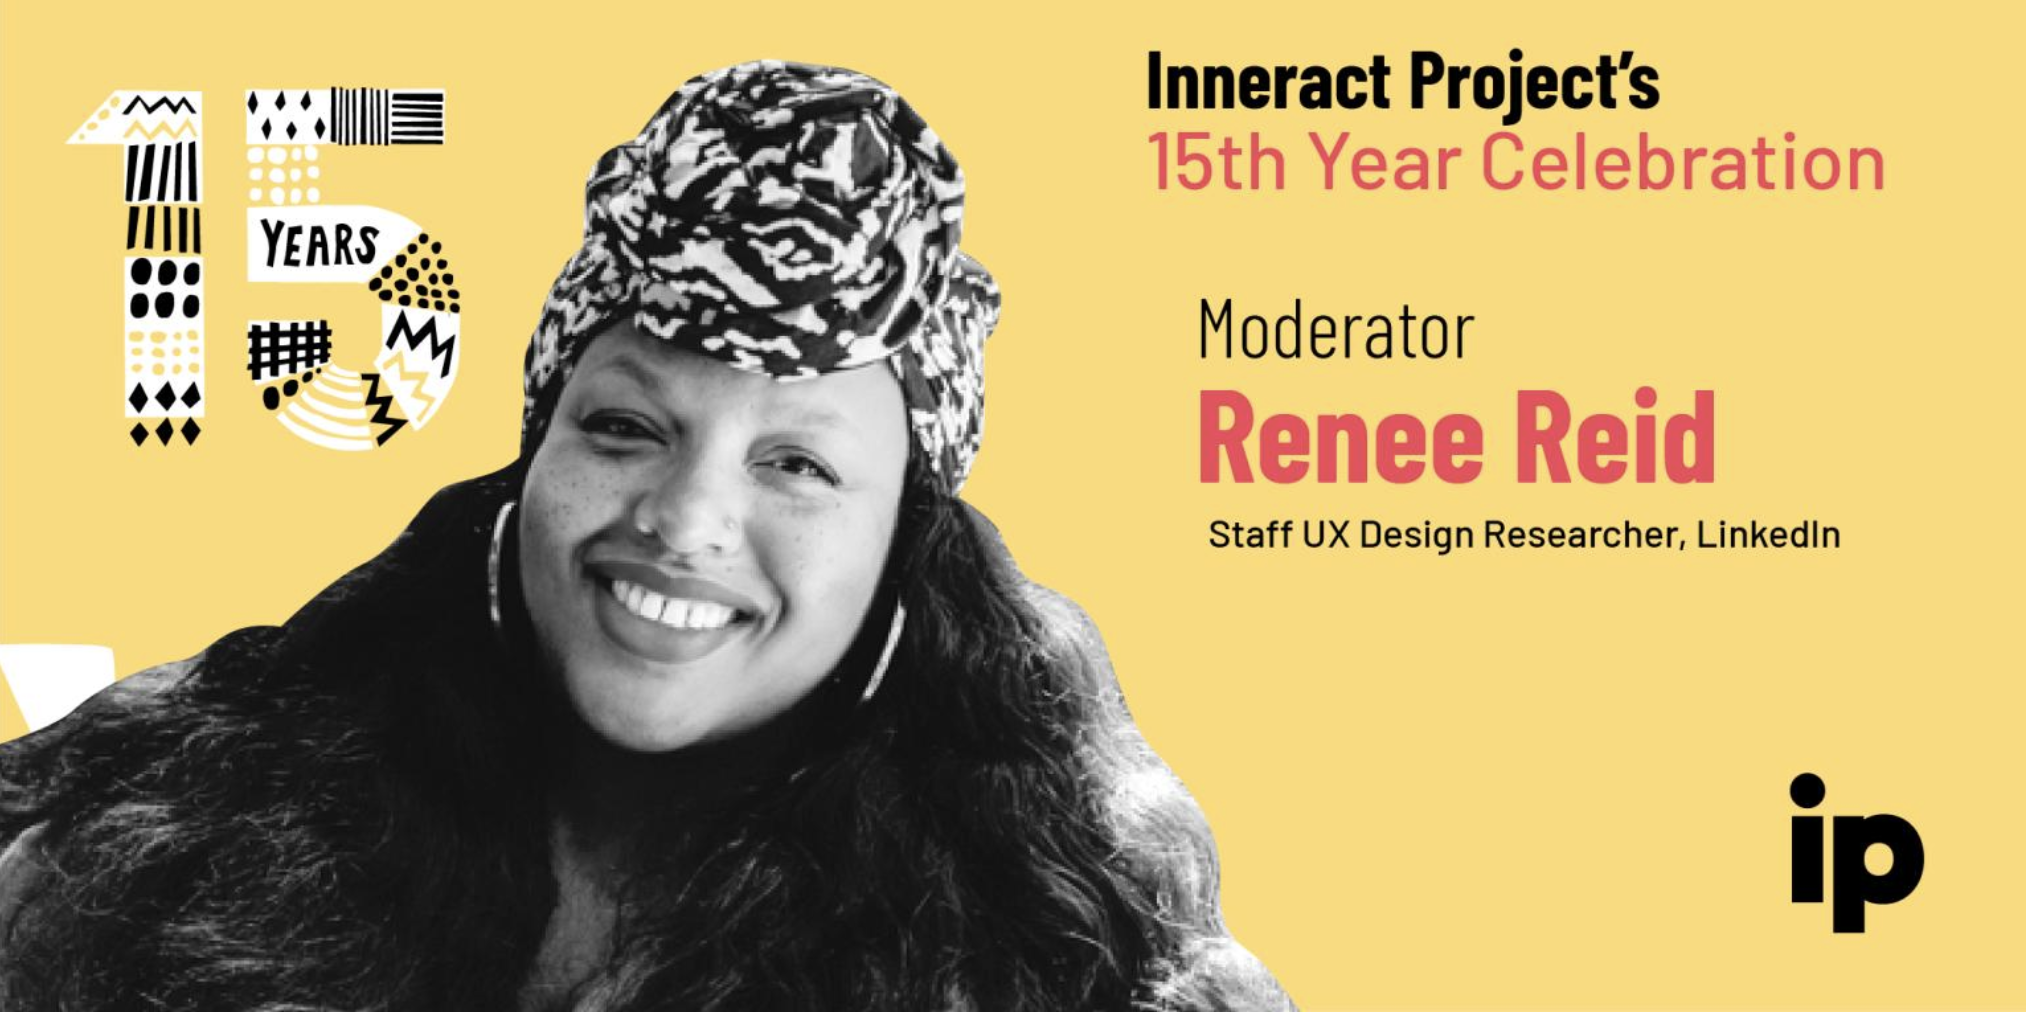 Moderator:Inneract Project 15 Year Celebration - - Inneract Project empowers the next generation of black and brown youth designers. The organization is committed to design education as well as the path towards inclusion and representation.